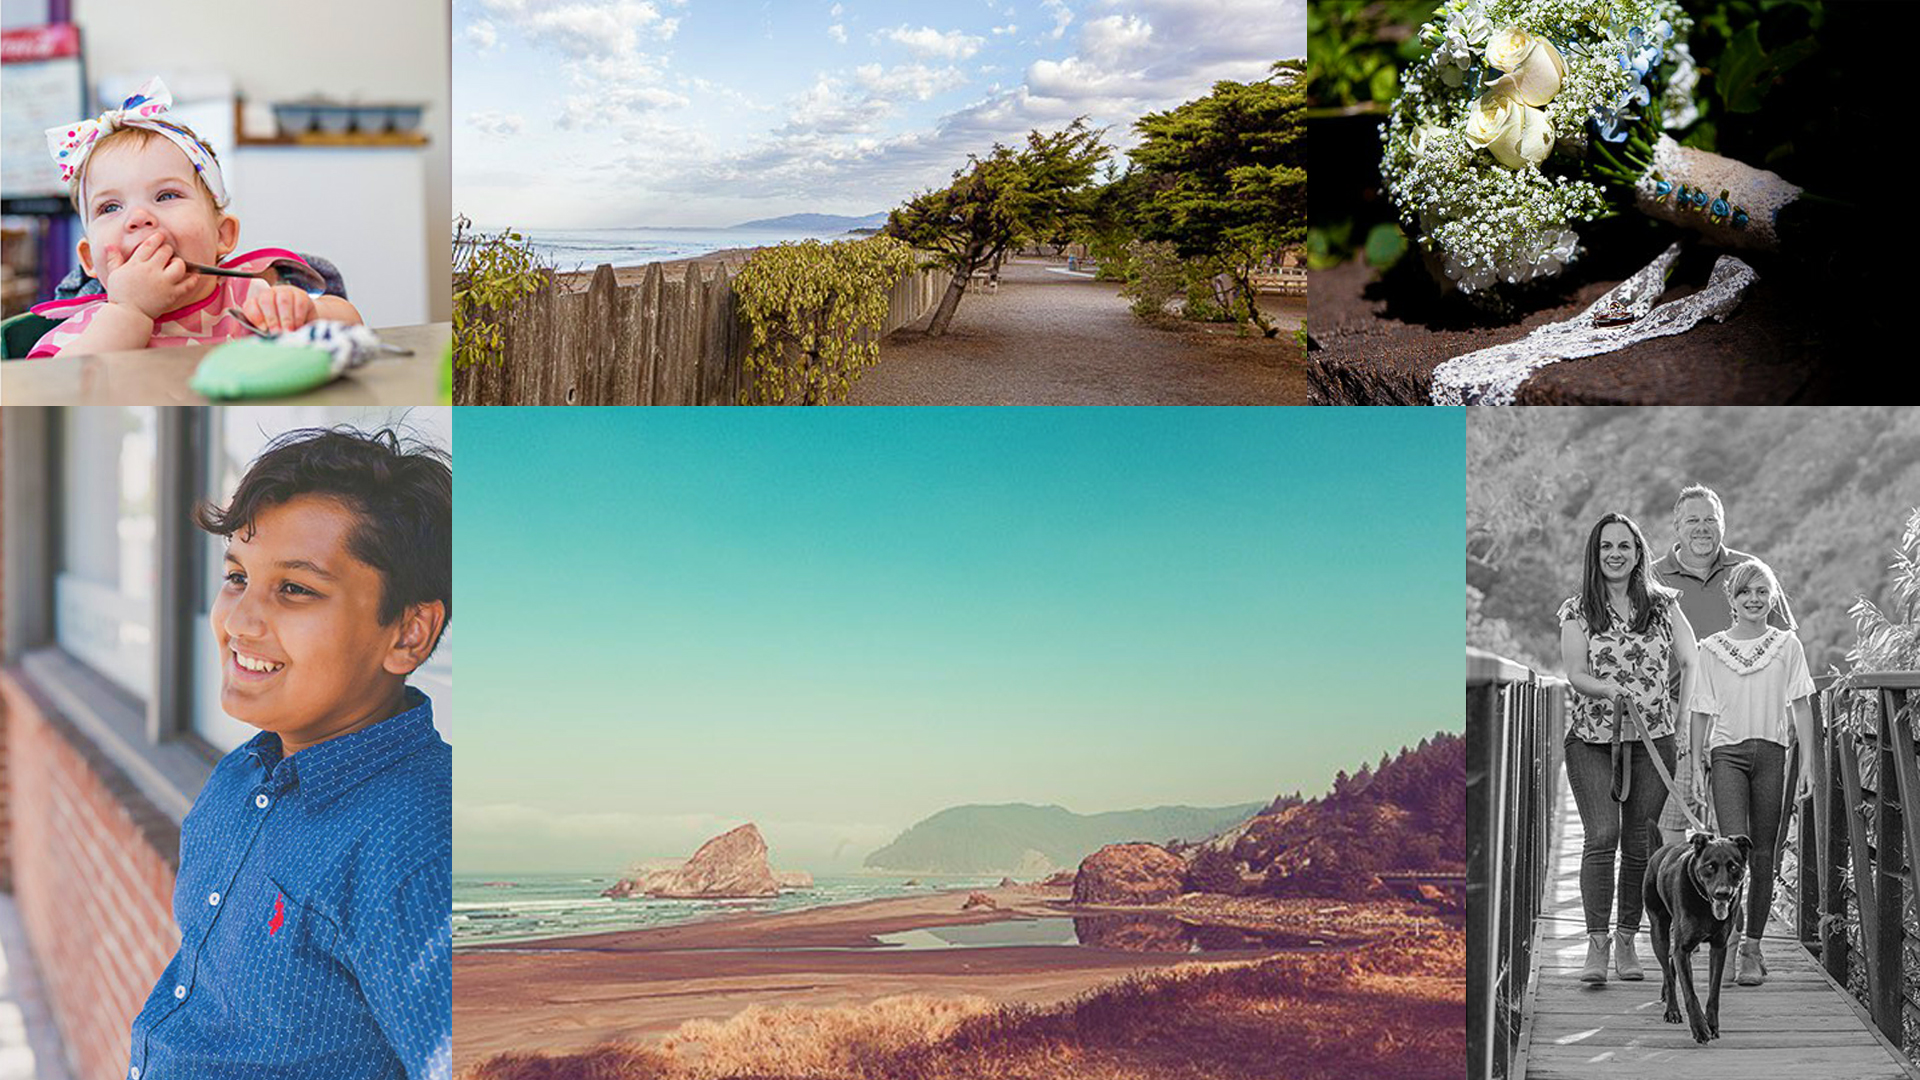 10 Different Photo Editing Styles To Try